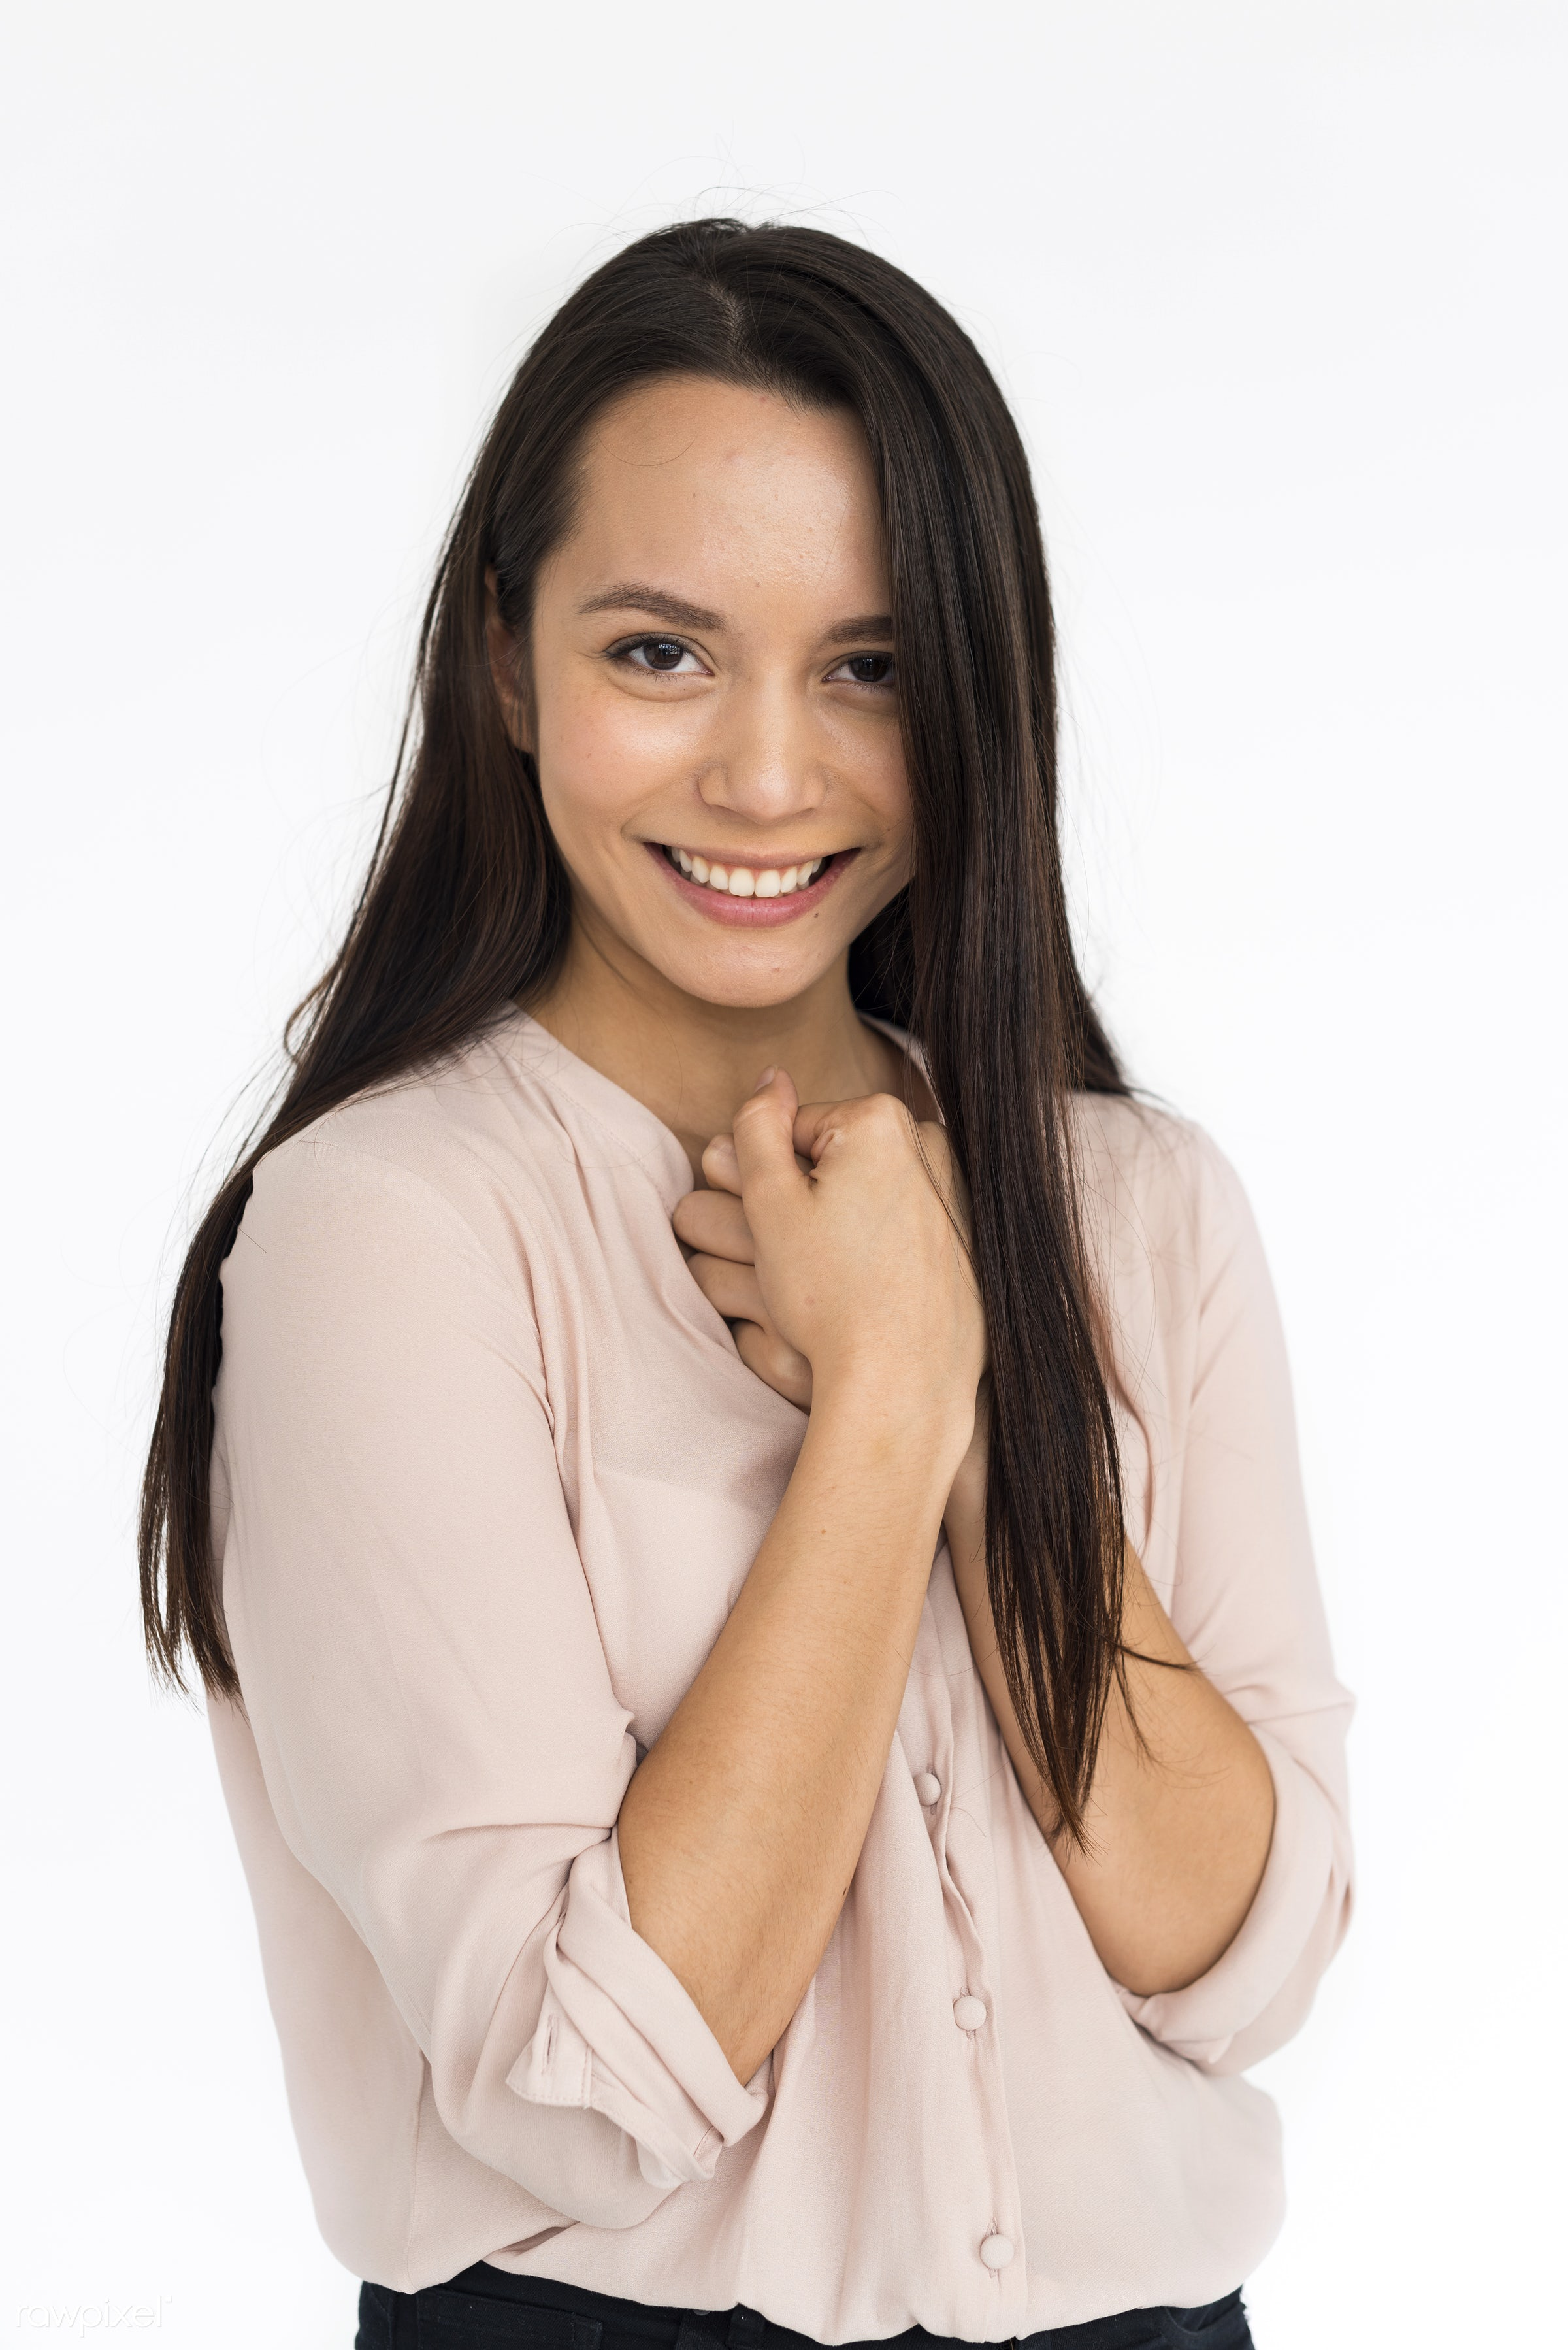 expression, studio, person, bright, caucasian, woman, relaxed, lifestyle, positive, smile, cheerful, alone, happiness,...